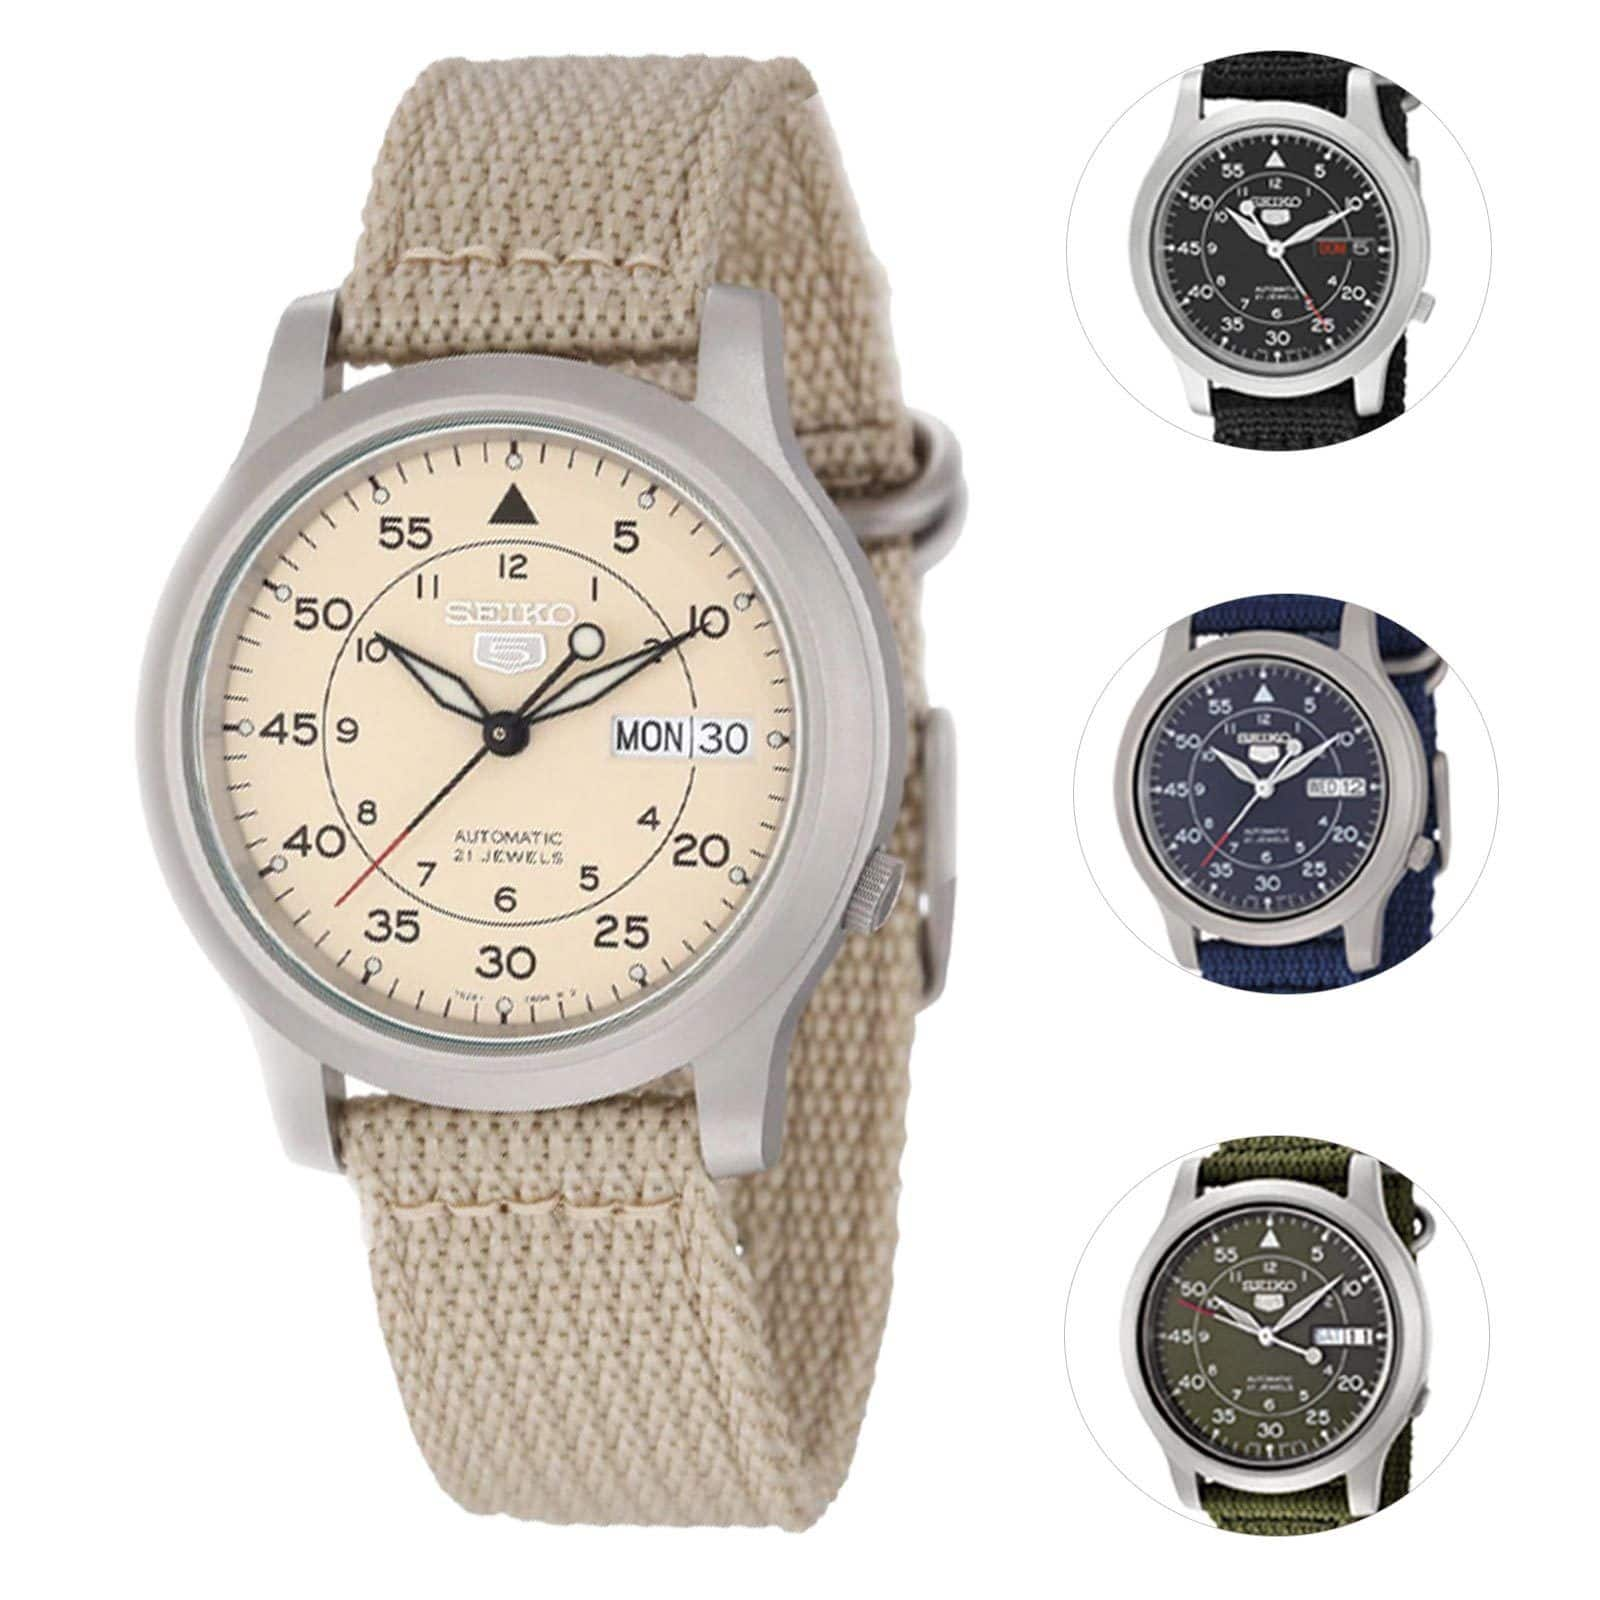 Seiko 5 Men's Automatic Watch $49.99 Free Ship